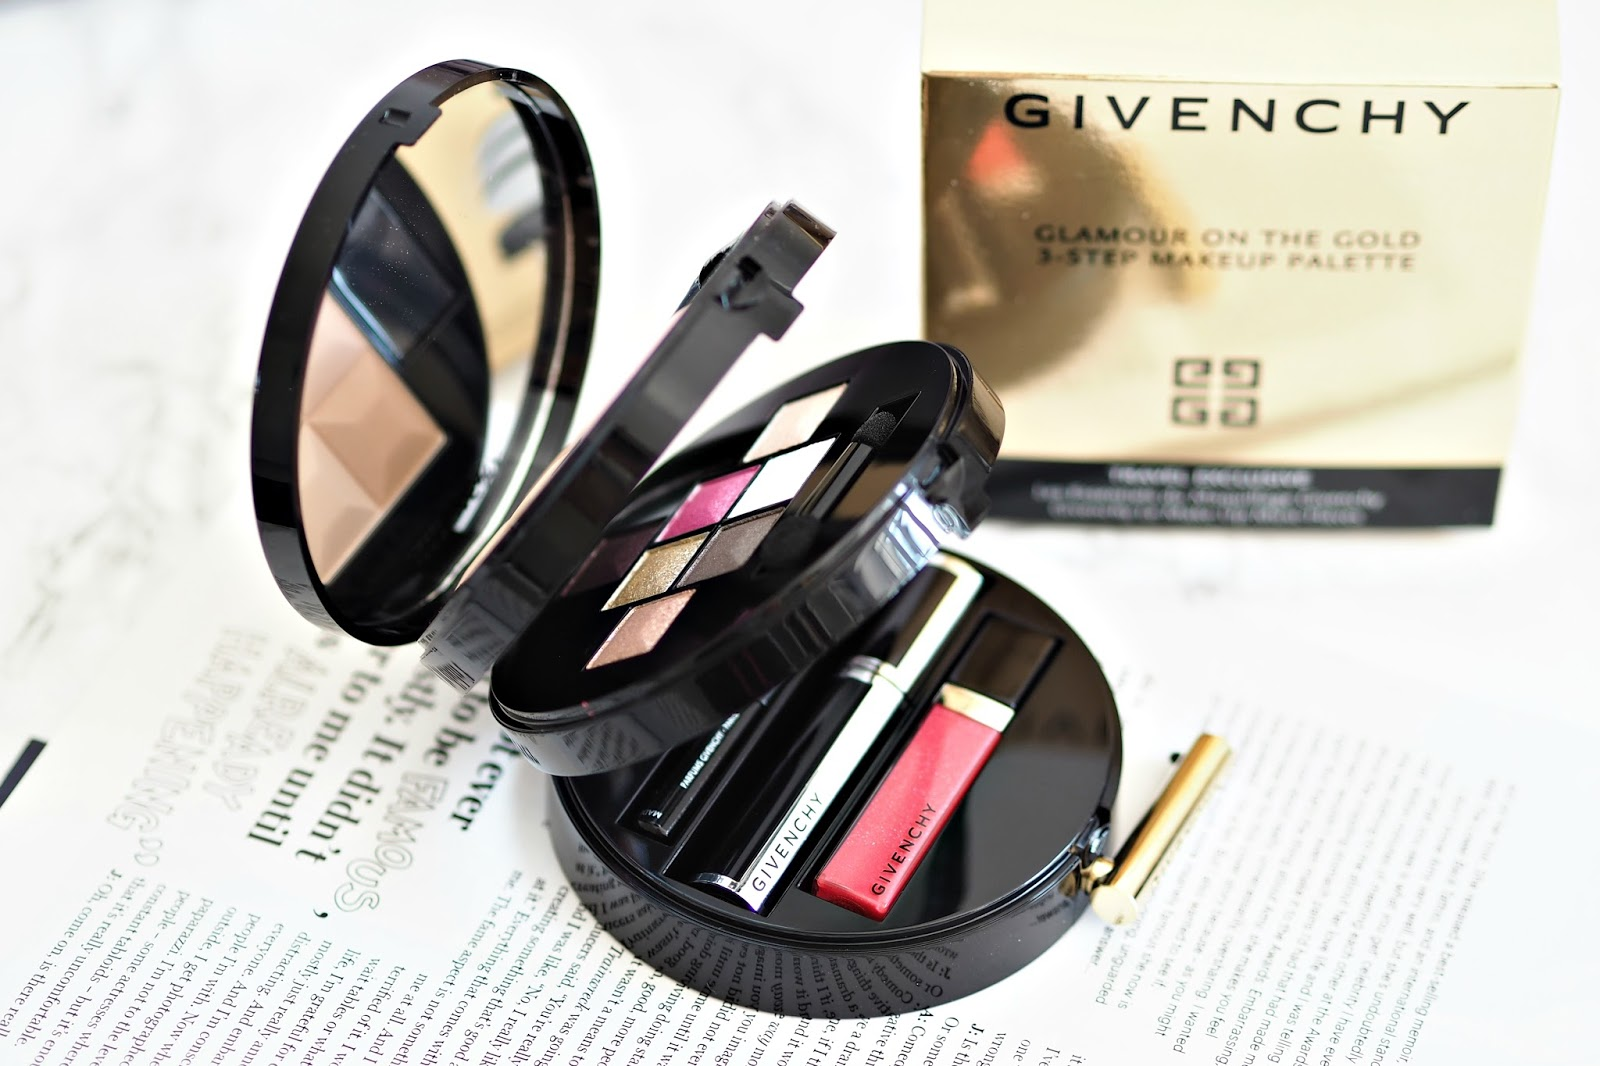 Givenchy Glamour On The Gold travel exclusive